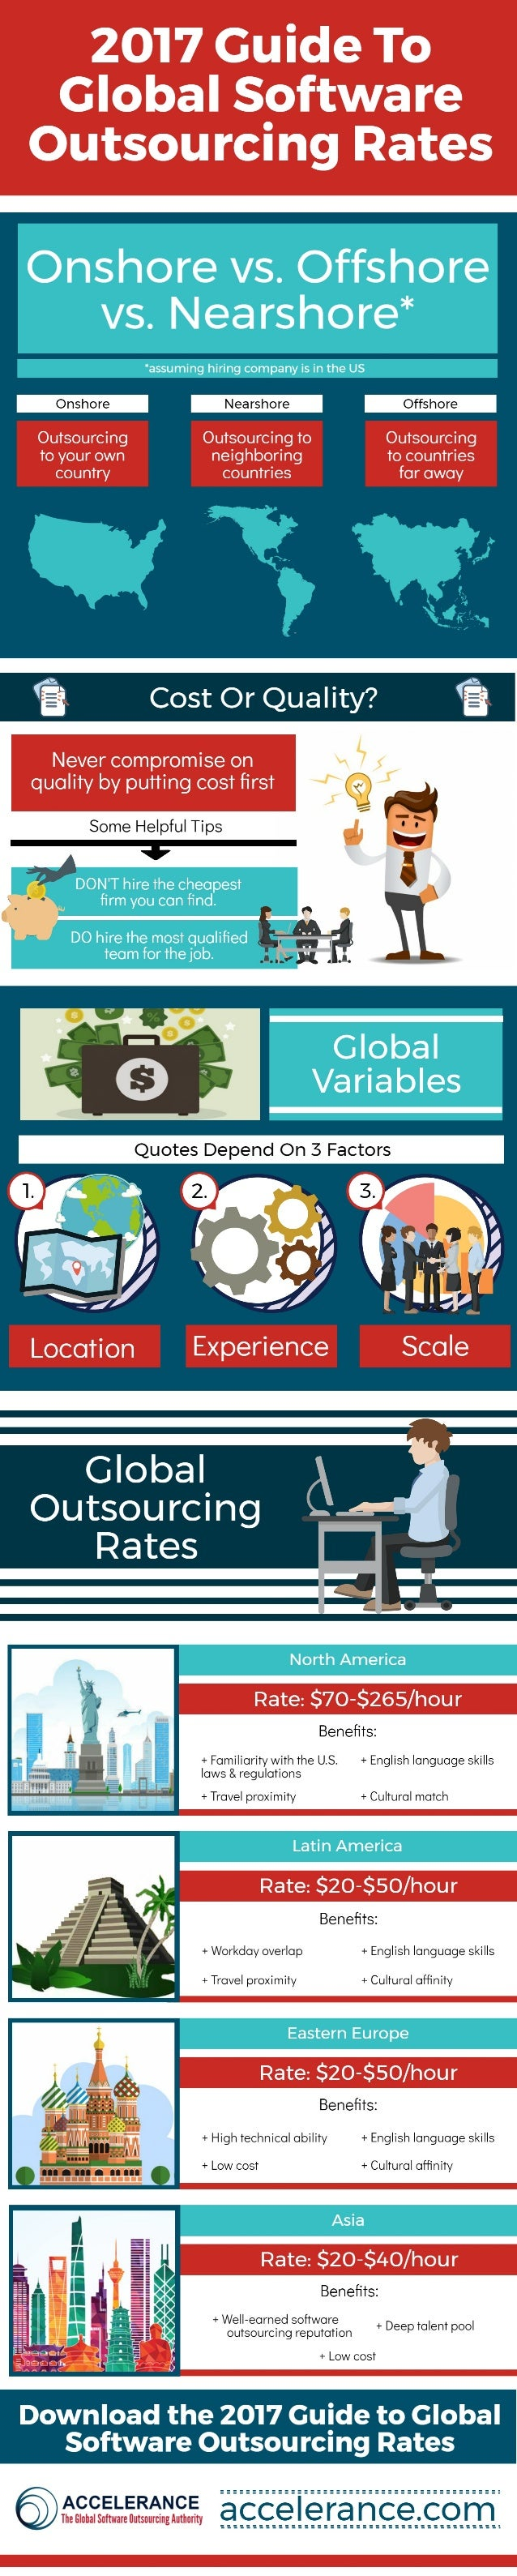 2017 Guide to Global Software Outsourcing Rates